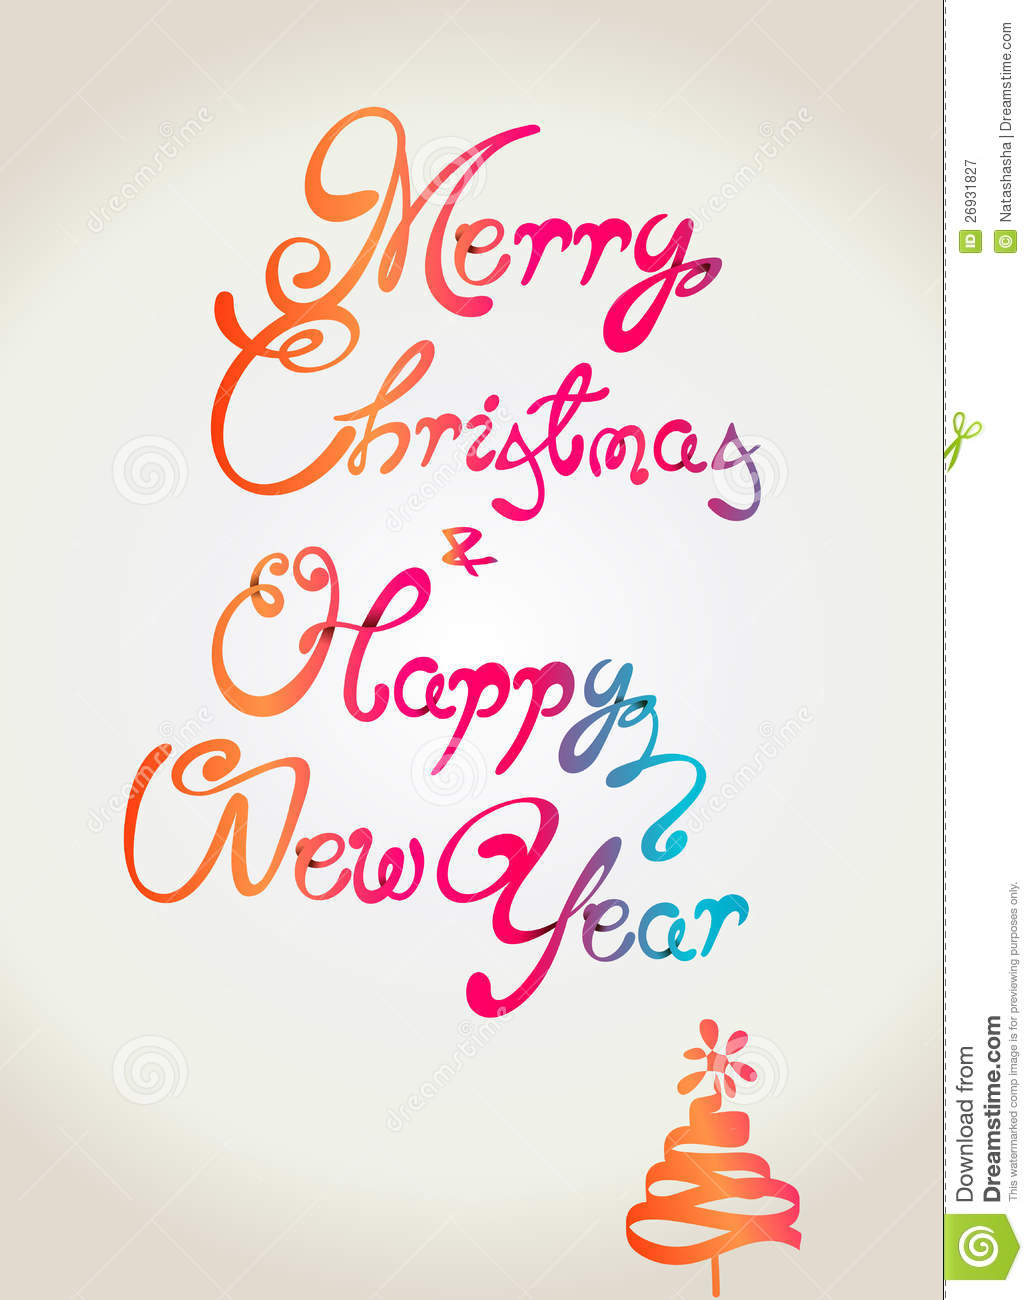 merry christmas and happy new year wallpaper desig